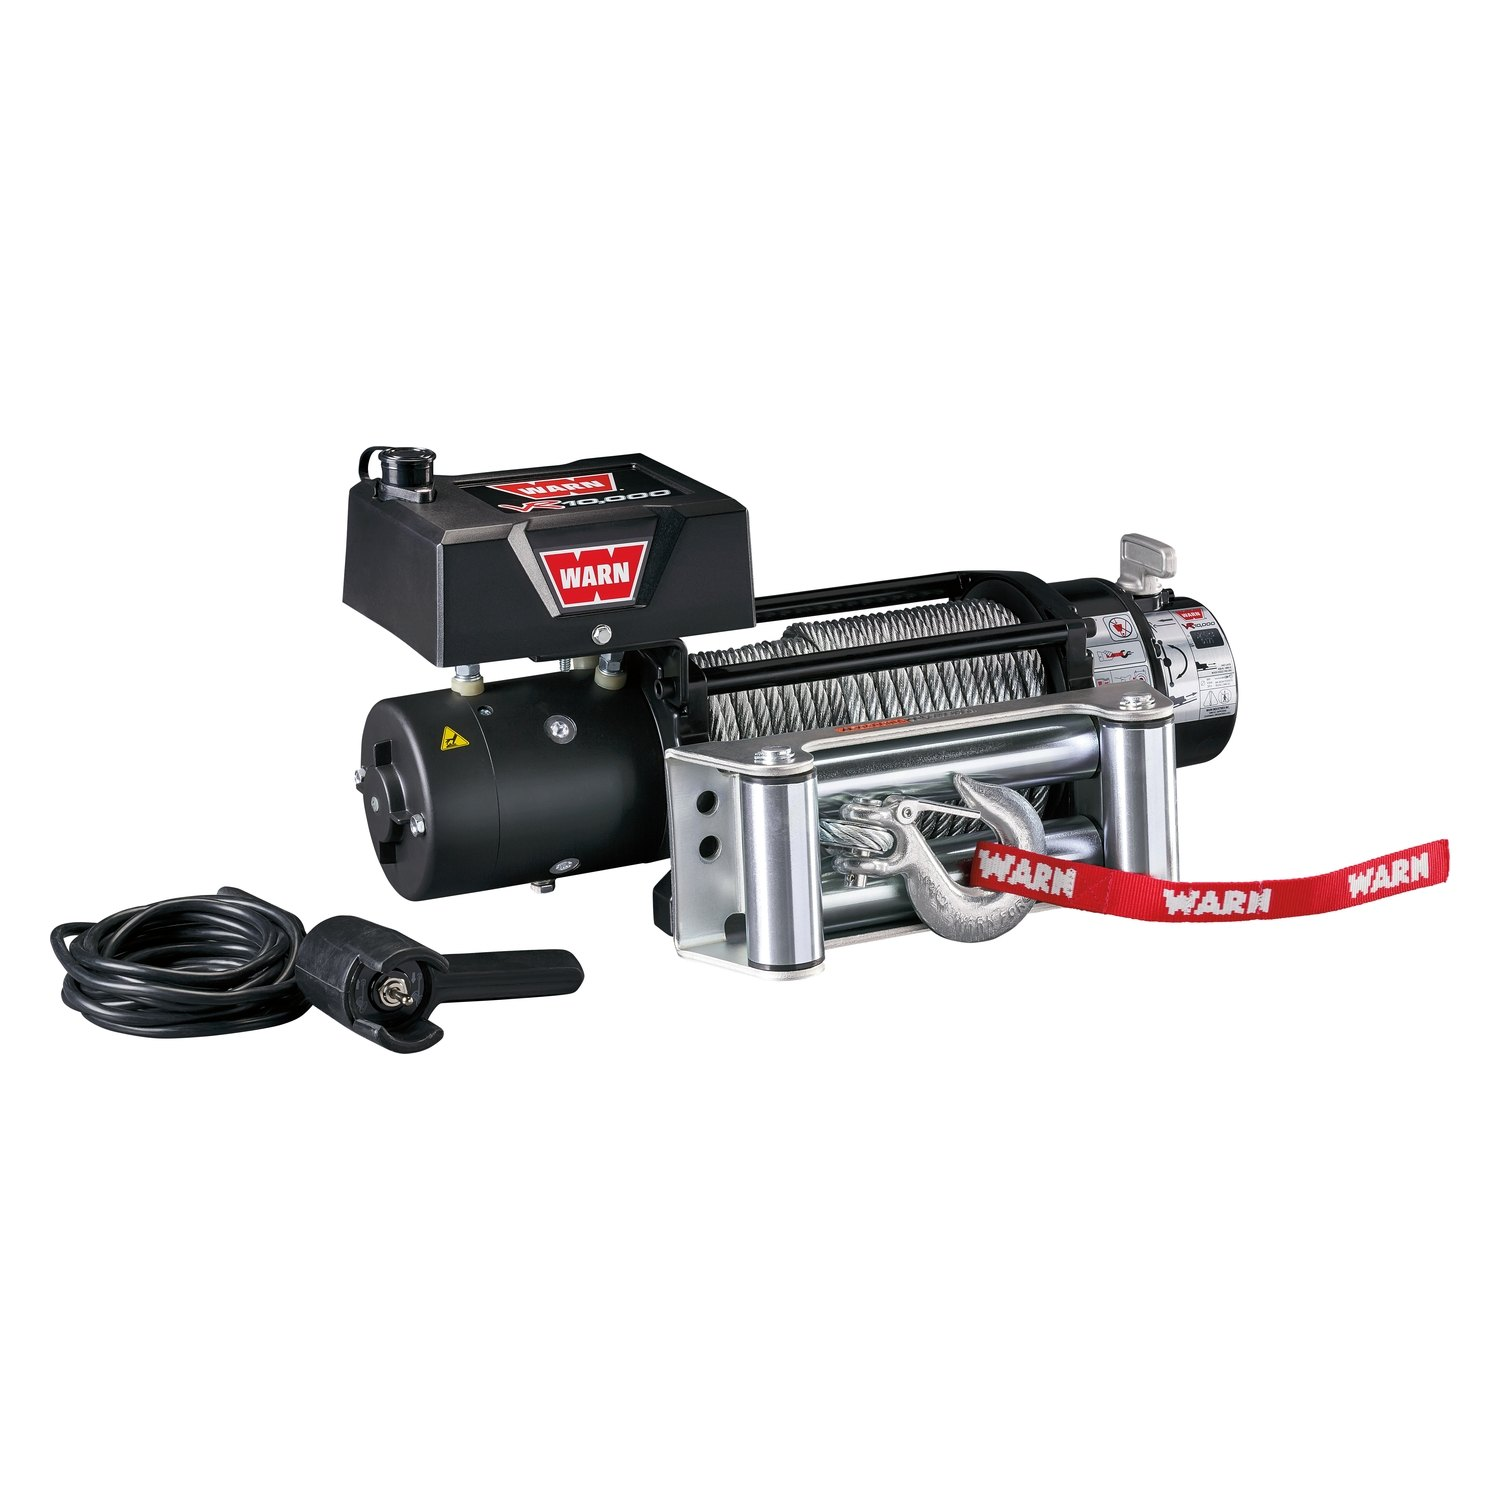 warn winch wiring diagram a2000 leeson m6k17fb3l 86255 10 000 lbs vr entry level series self